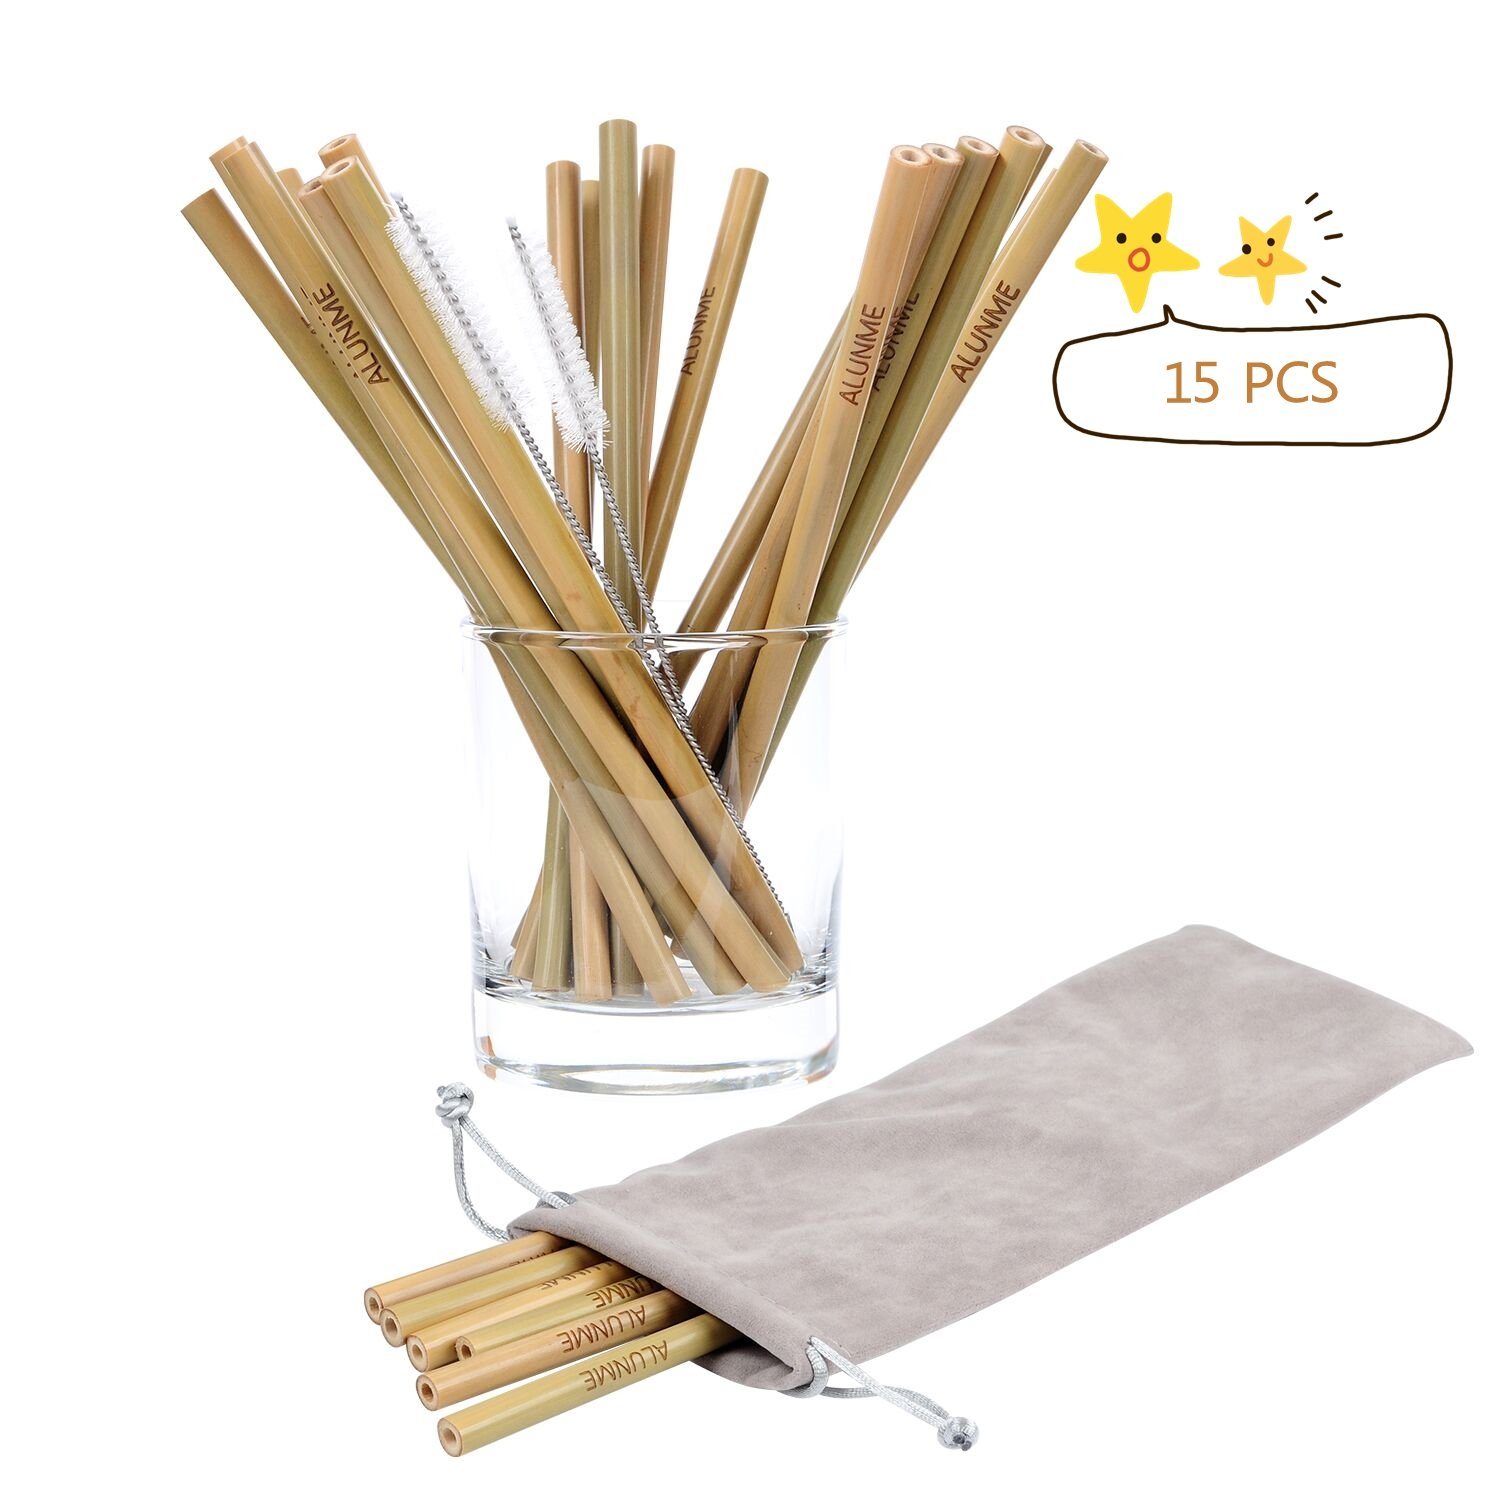 ALUNME Natural Organic Bamboo Straws, Set of 15 8 Inch Reusable Bamboo Drinking Straws with 2 Brushes and Carry Bag,BPA Free Sustainable Straws Alternative Plastic Kids Straw